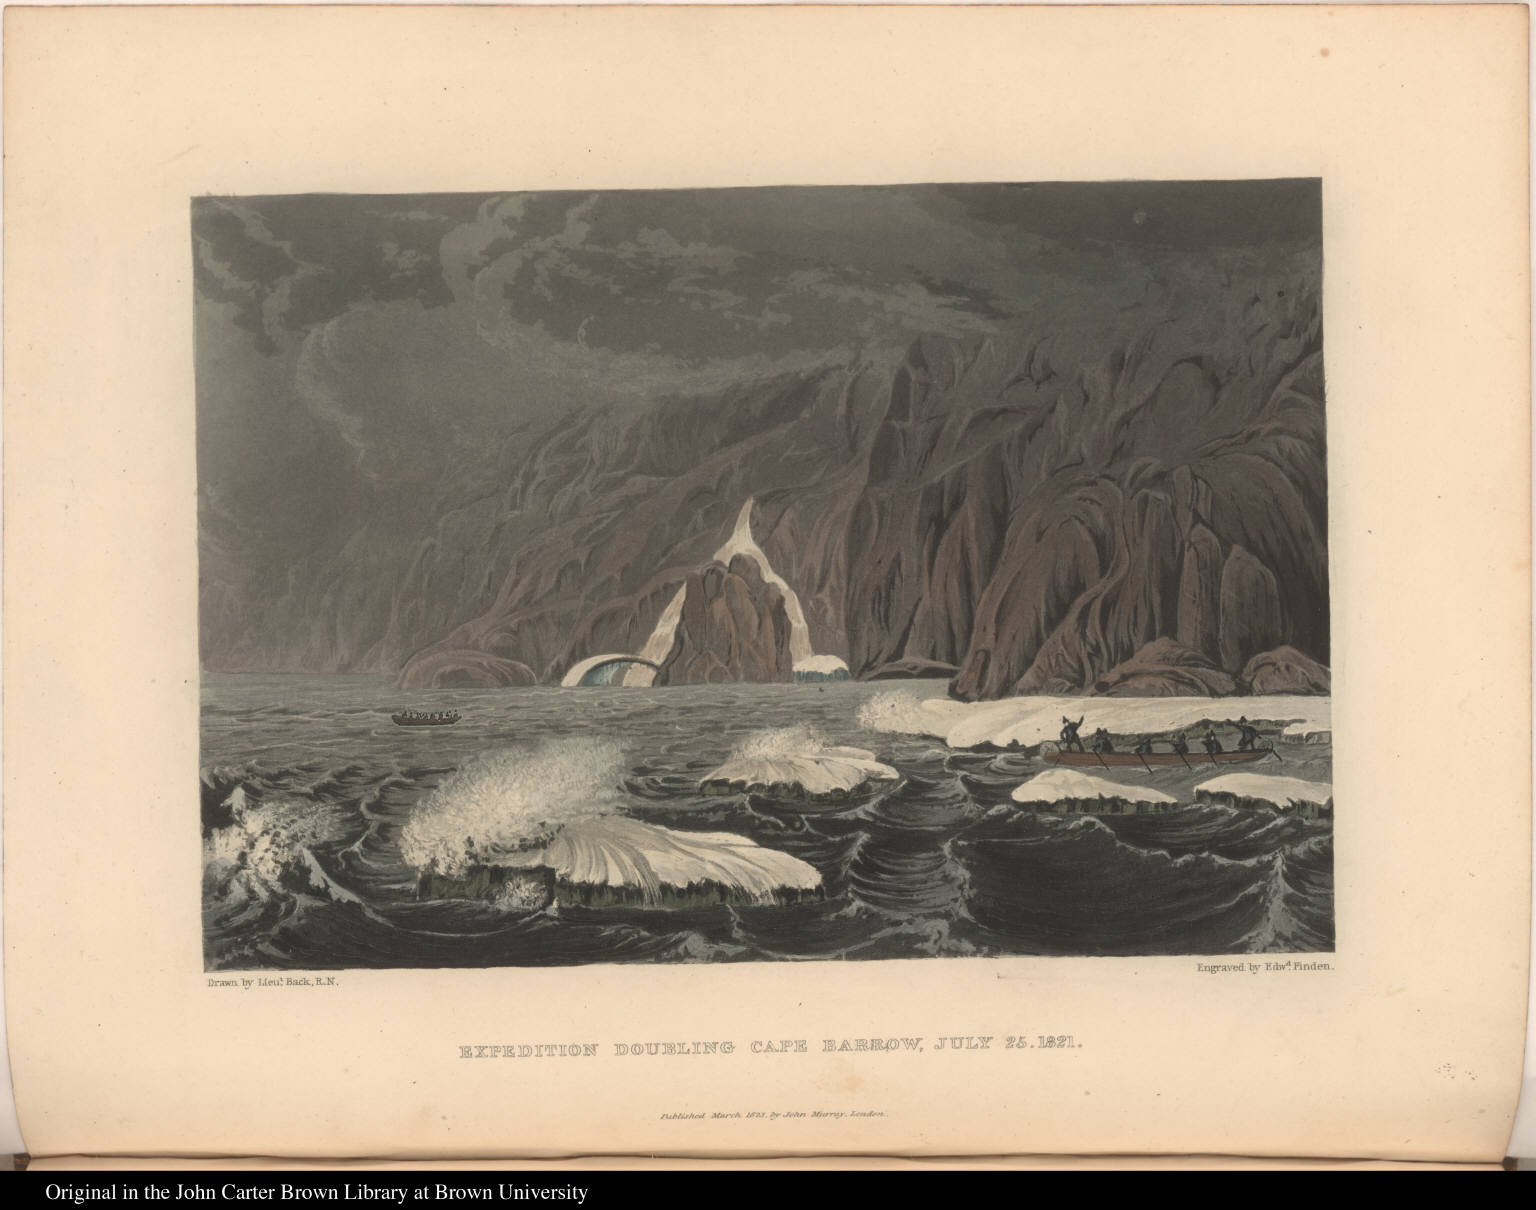 Expedition Doubling Cape Barrow, July 25, 1821  - JCB